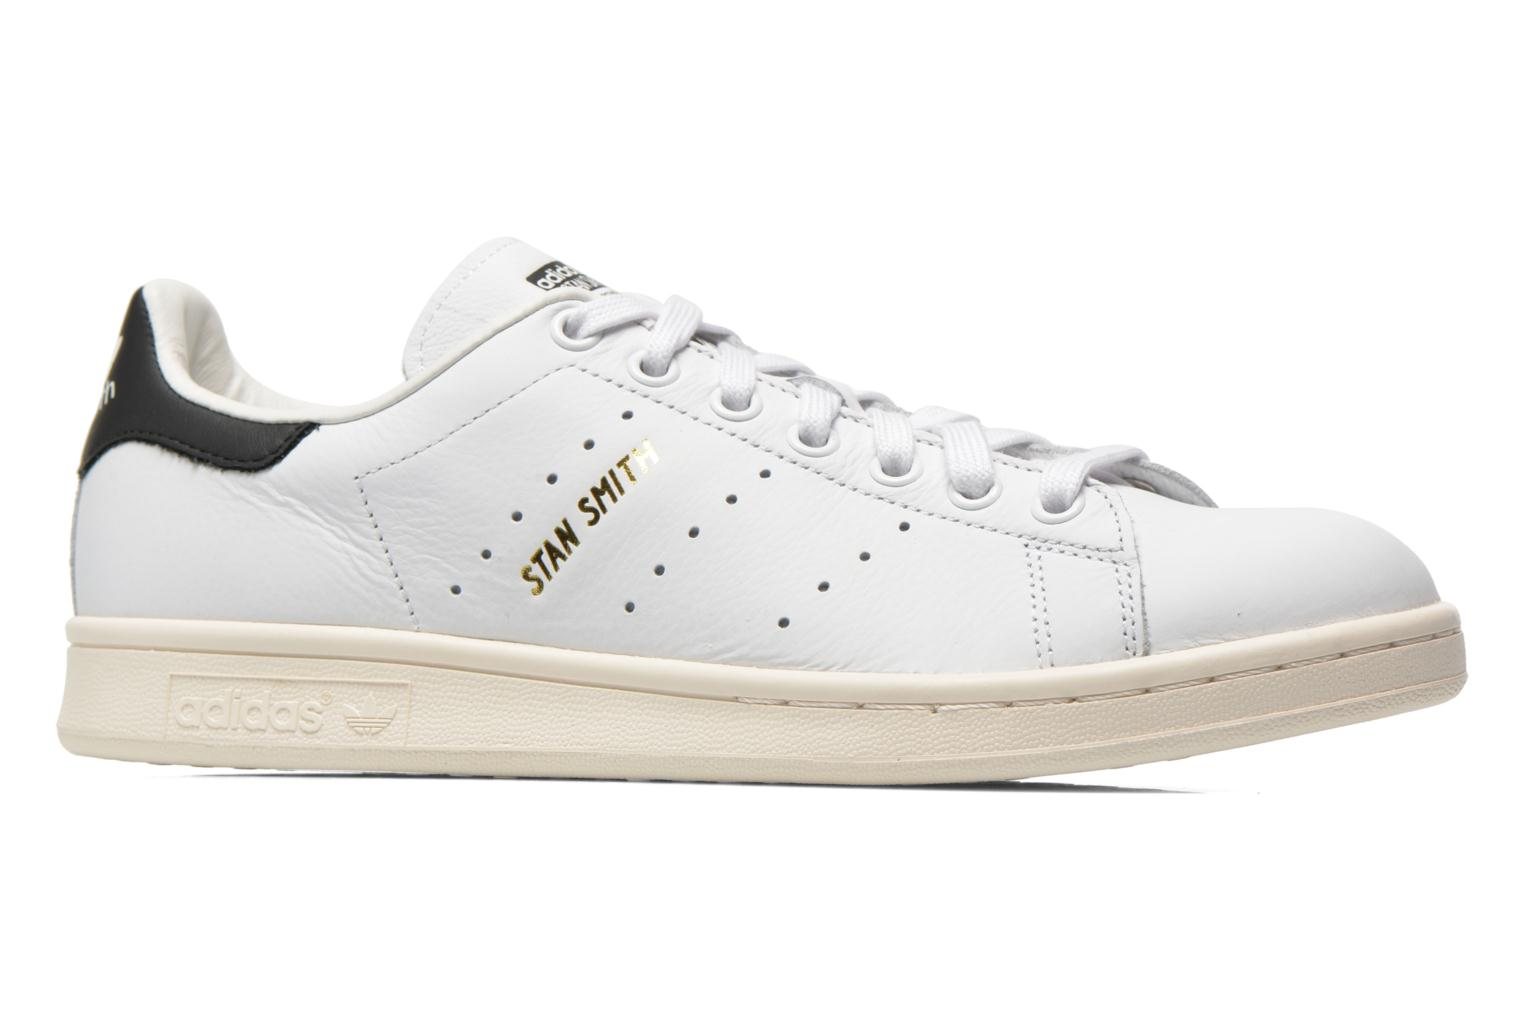 Stan Smith Ftwbla-Ftwbla-Noiess PE16